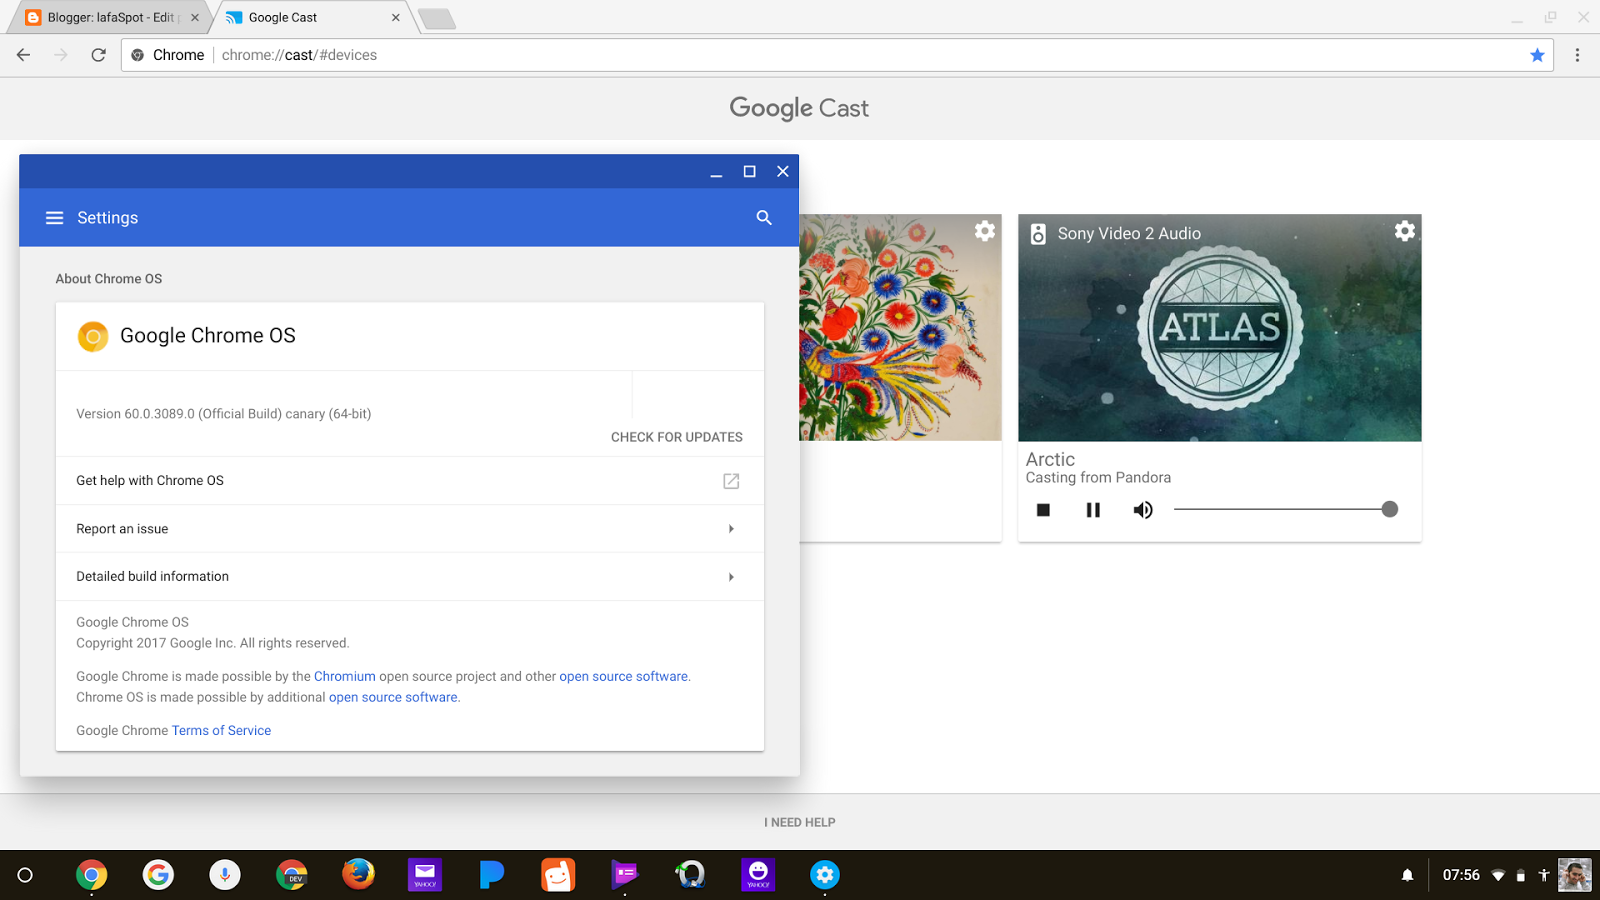 Chrome OS advanced commands, settings, expert features